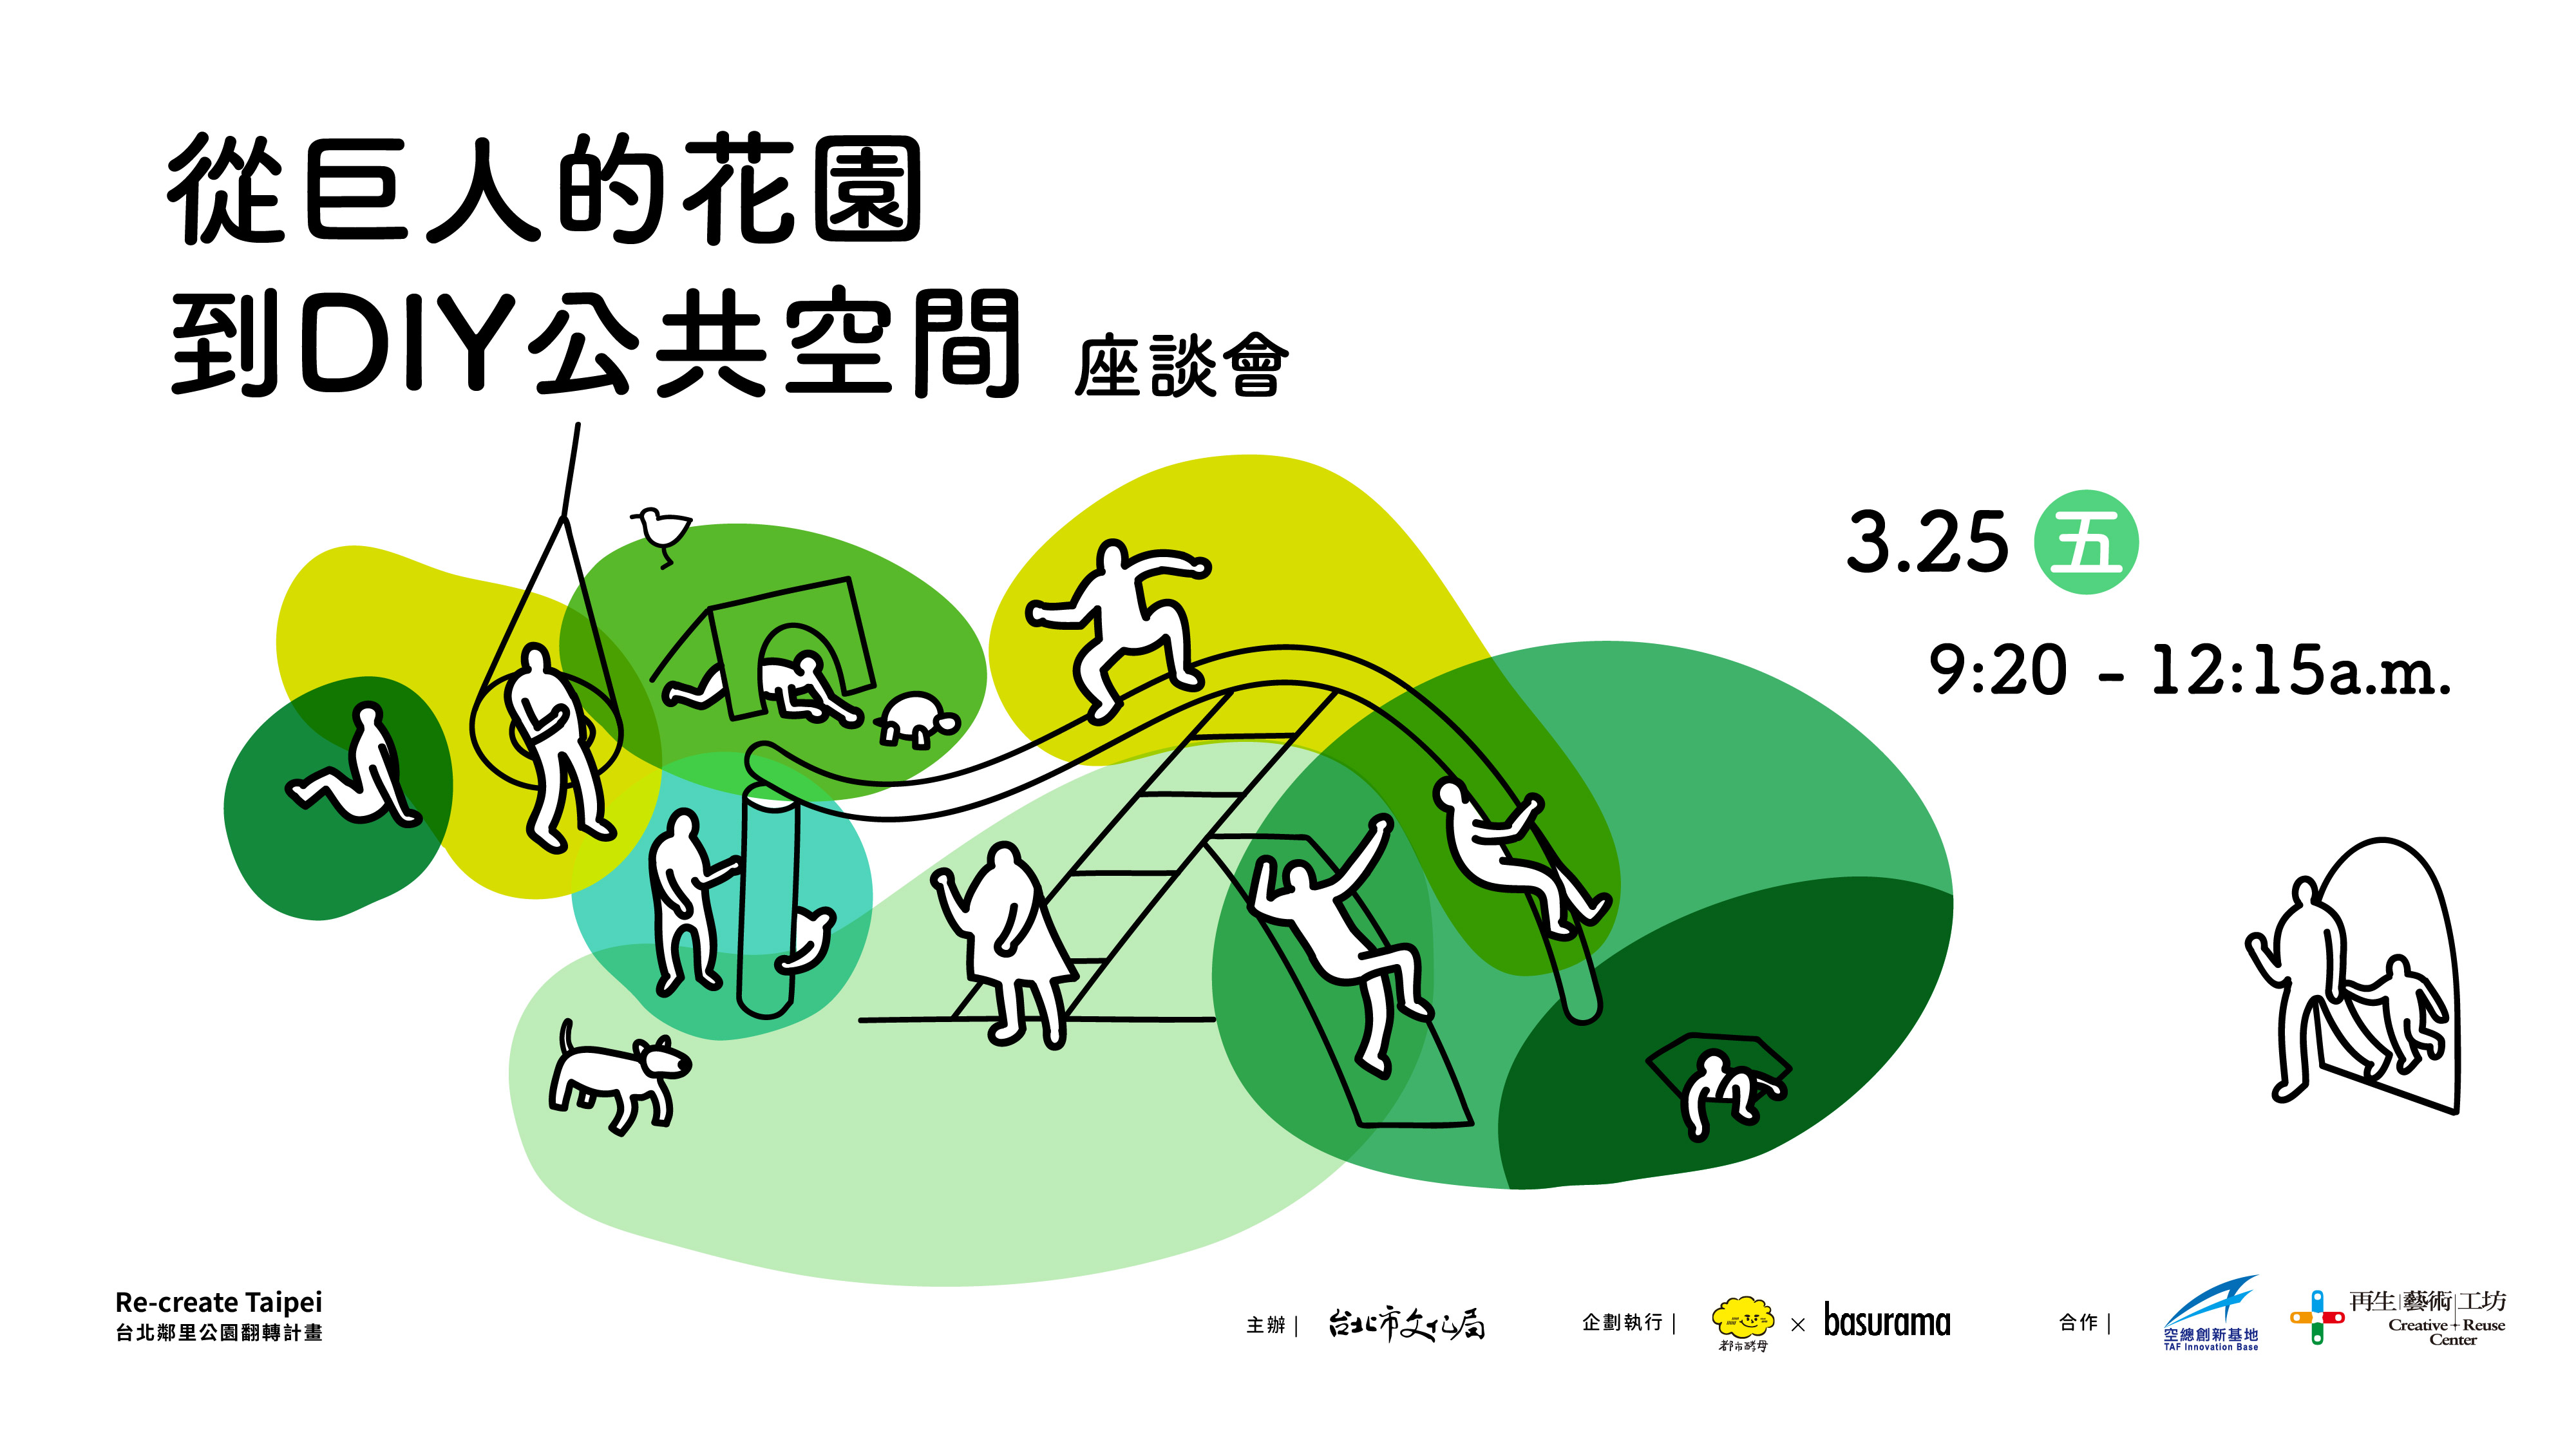 都市酵母, 水越設計, basurama, 台北鄰里公園翻轉計畫, re-create Taipei, 2016台北世界設計之都, WDC Taipei, world design capital Taipei, park, 公園, 公共空間